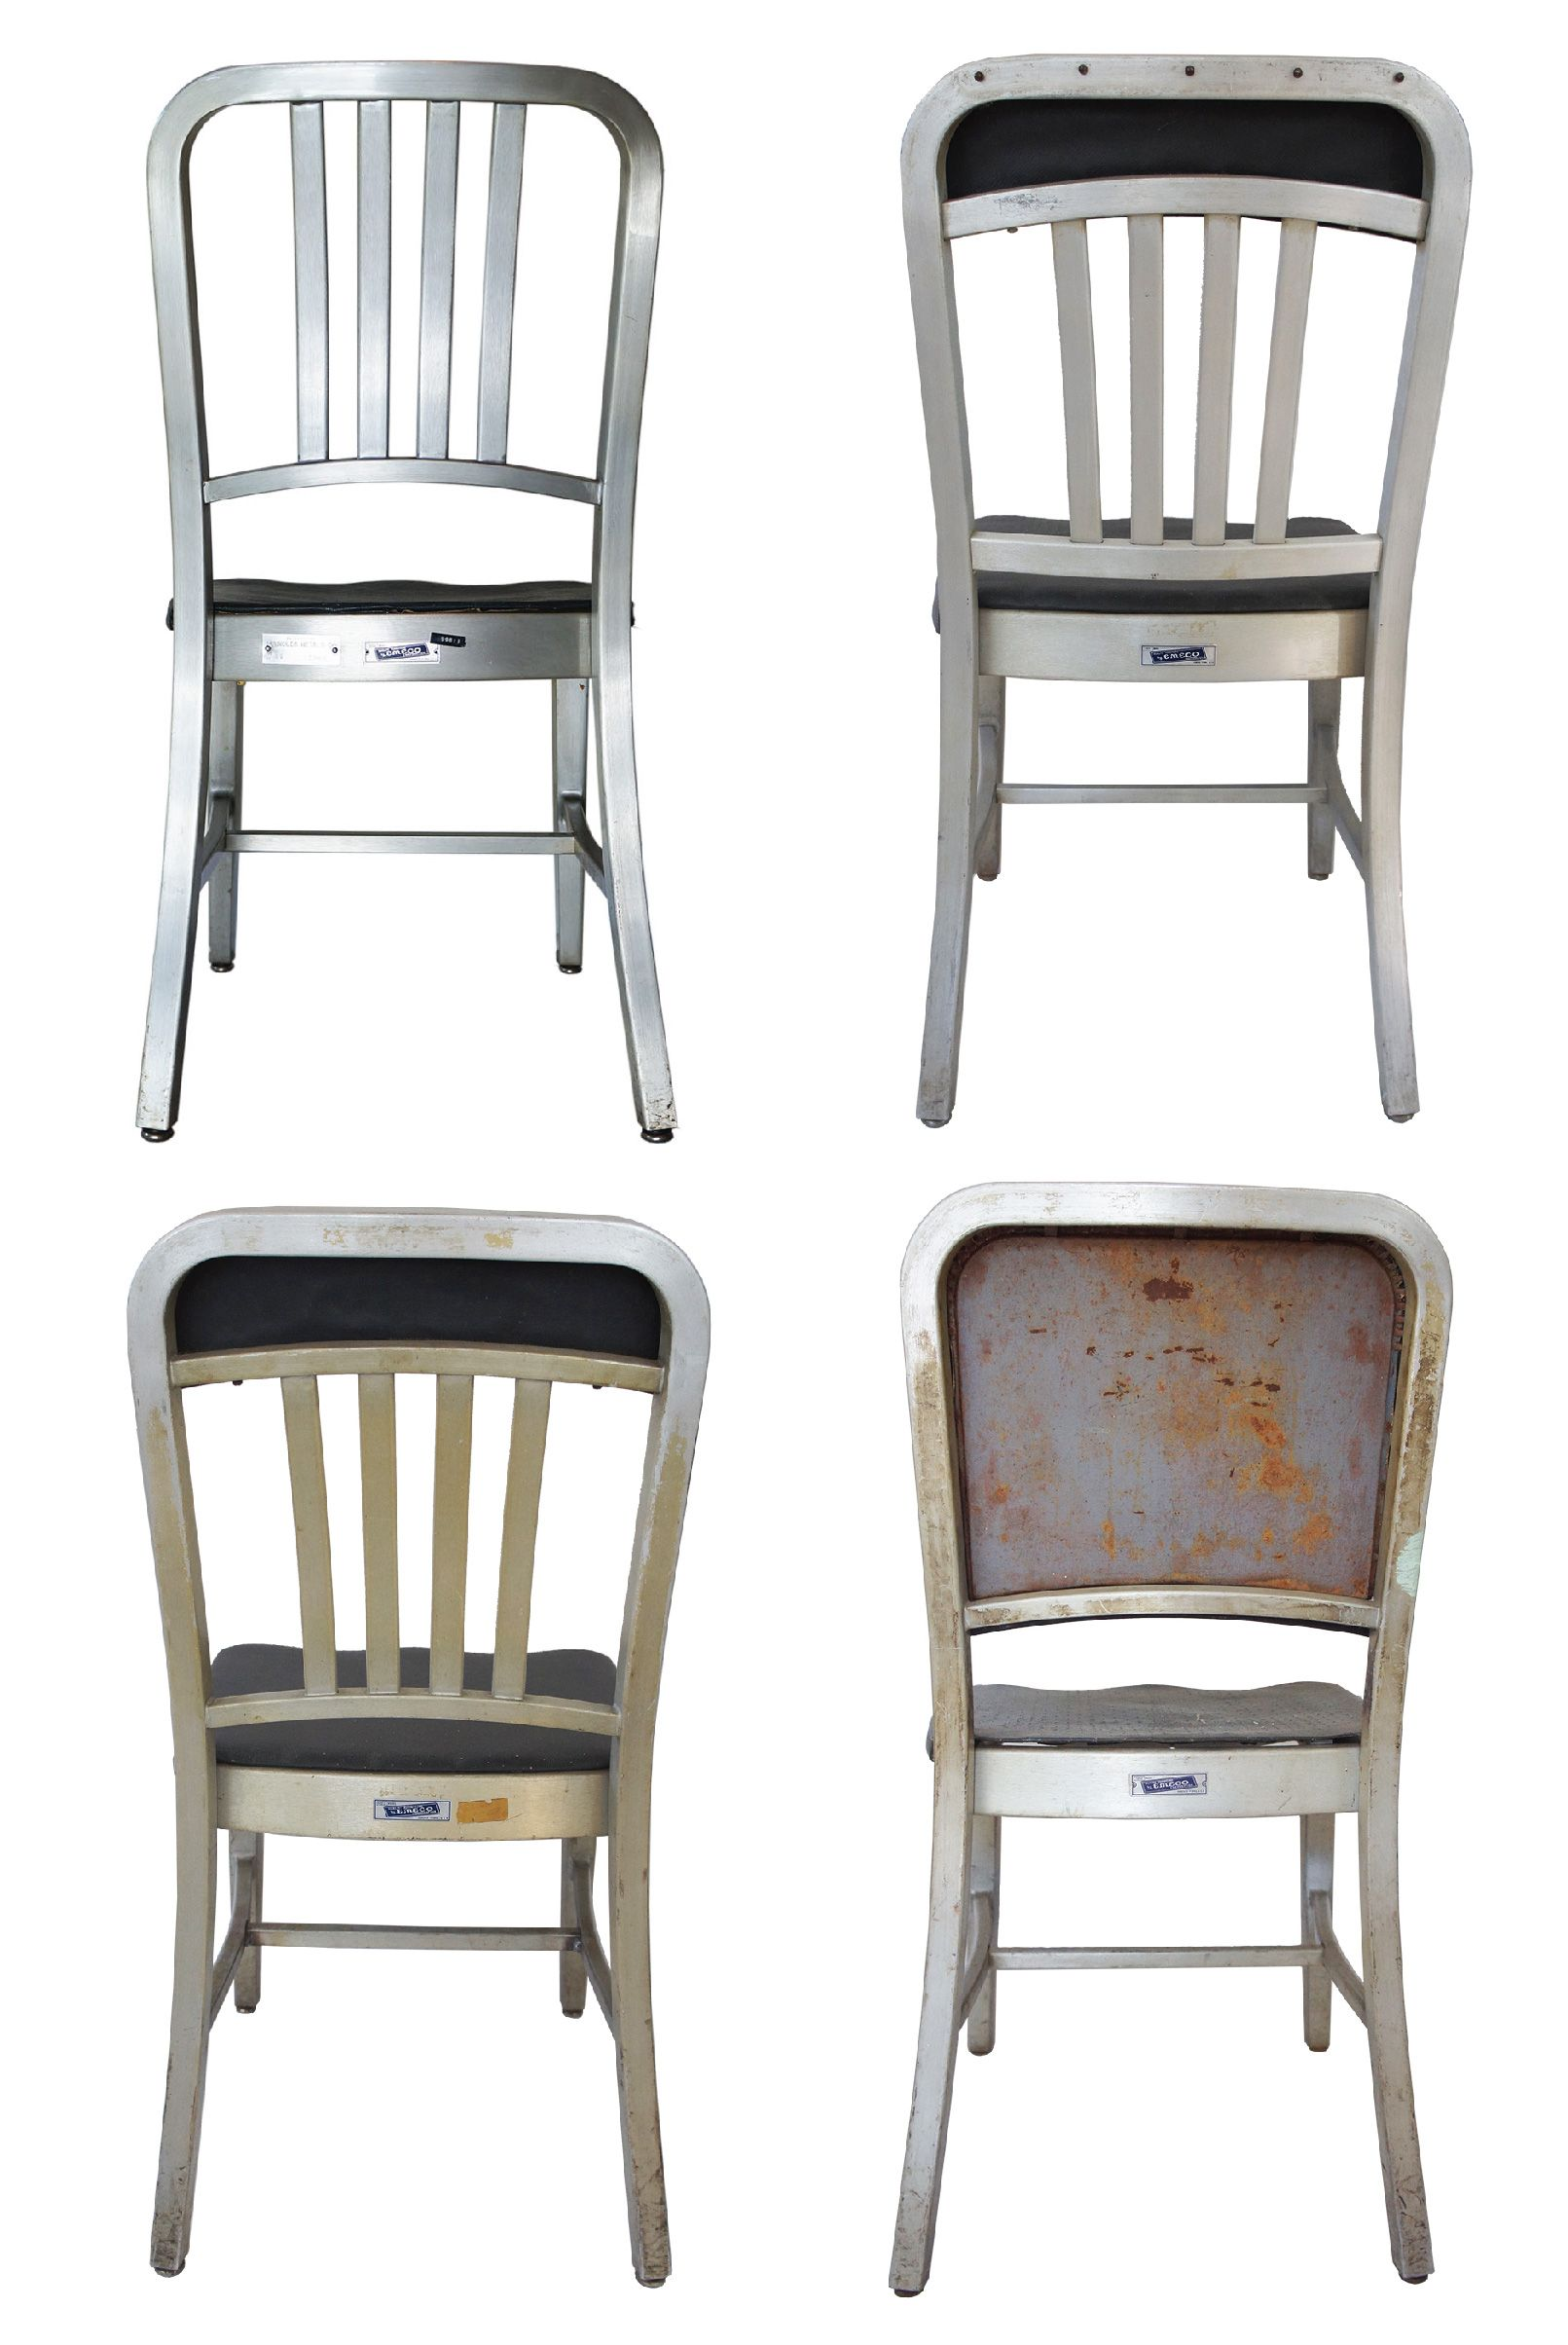 Emeco Aluminum Navy Chairs, Assorted   Set Of 4   Image 4 Of 5